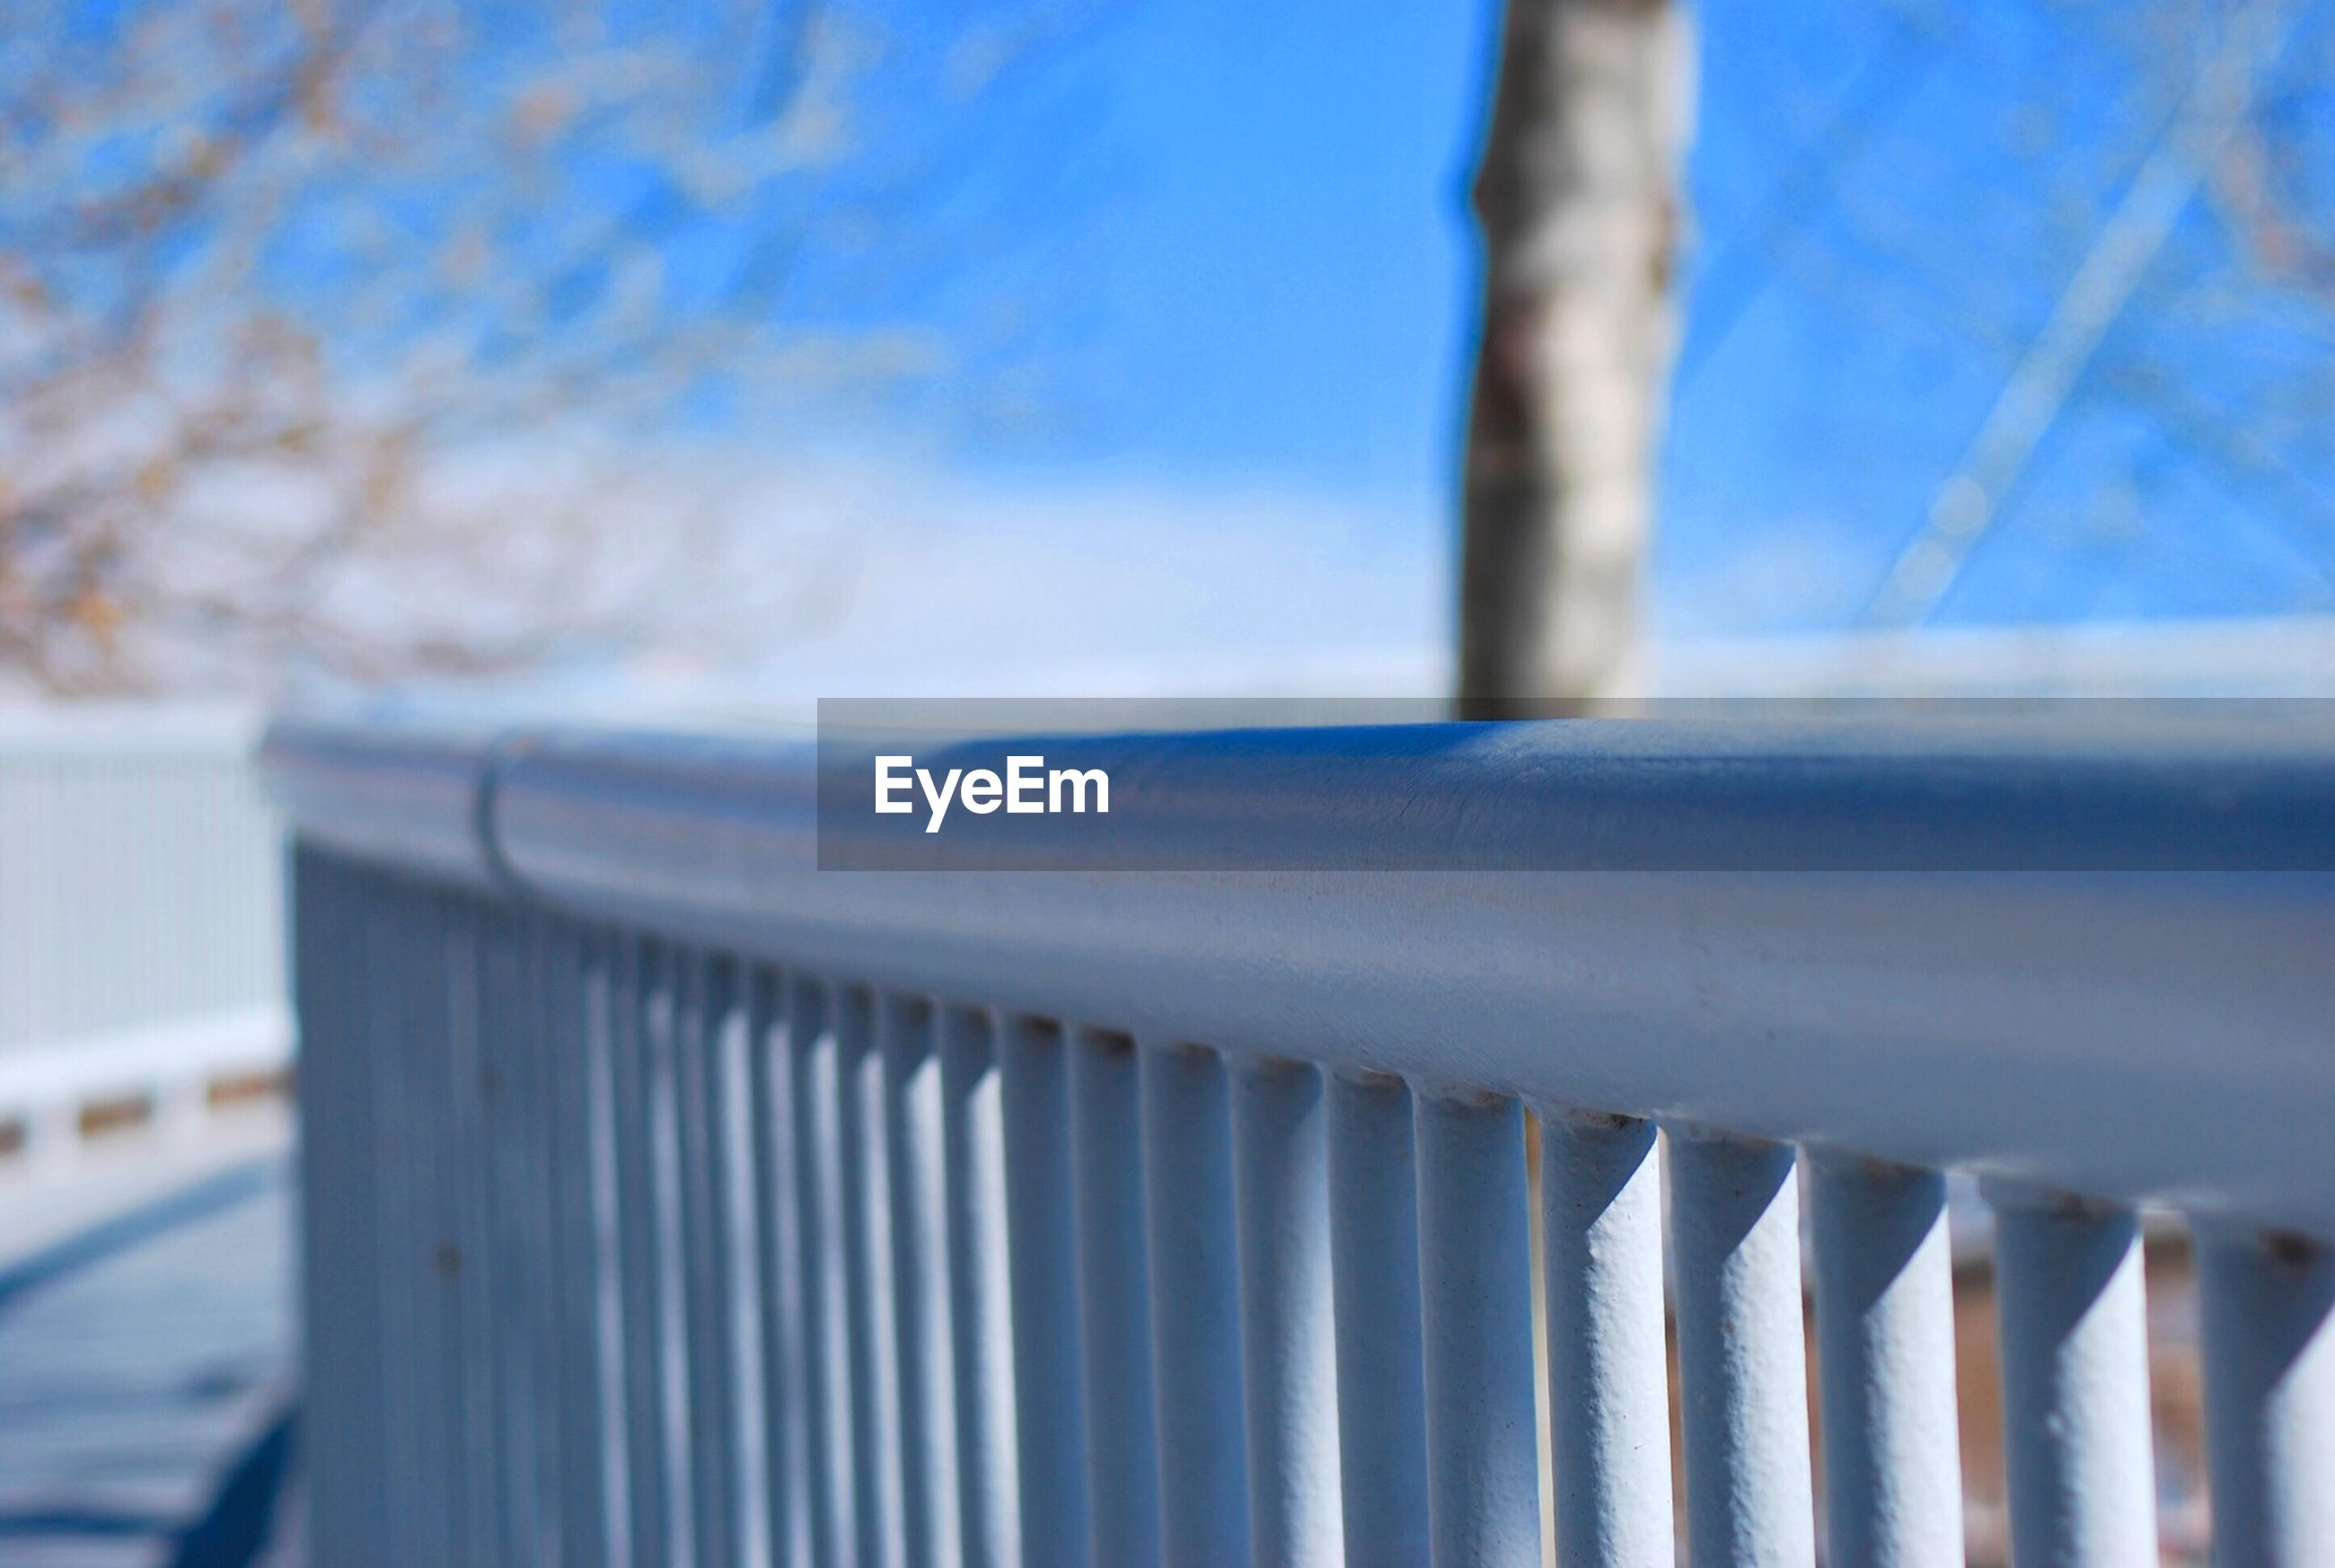 Close-up of railings against blurred sky